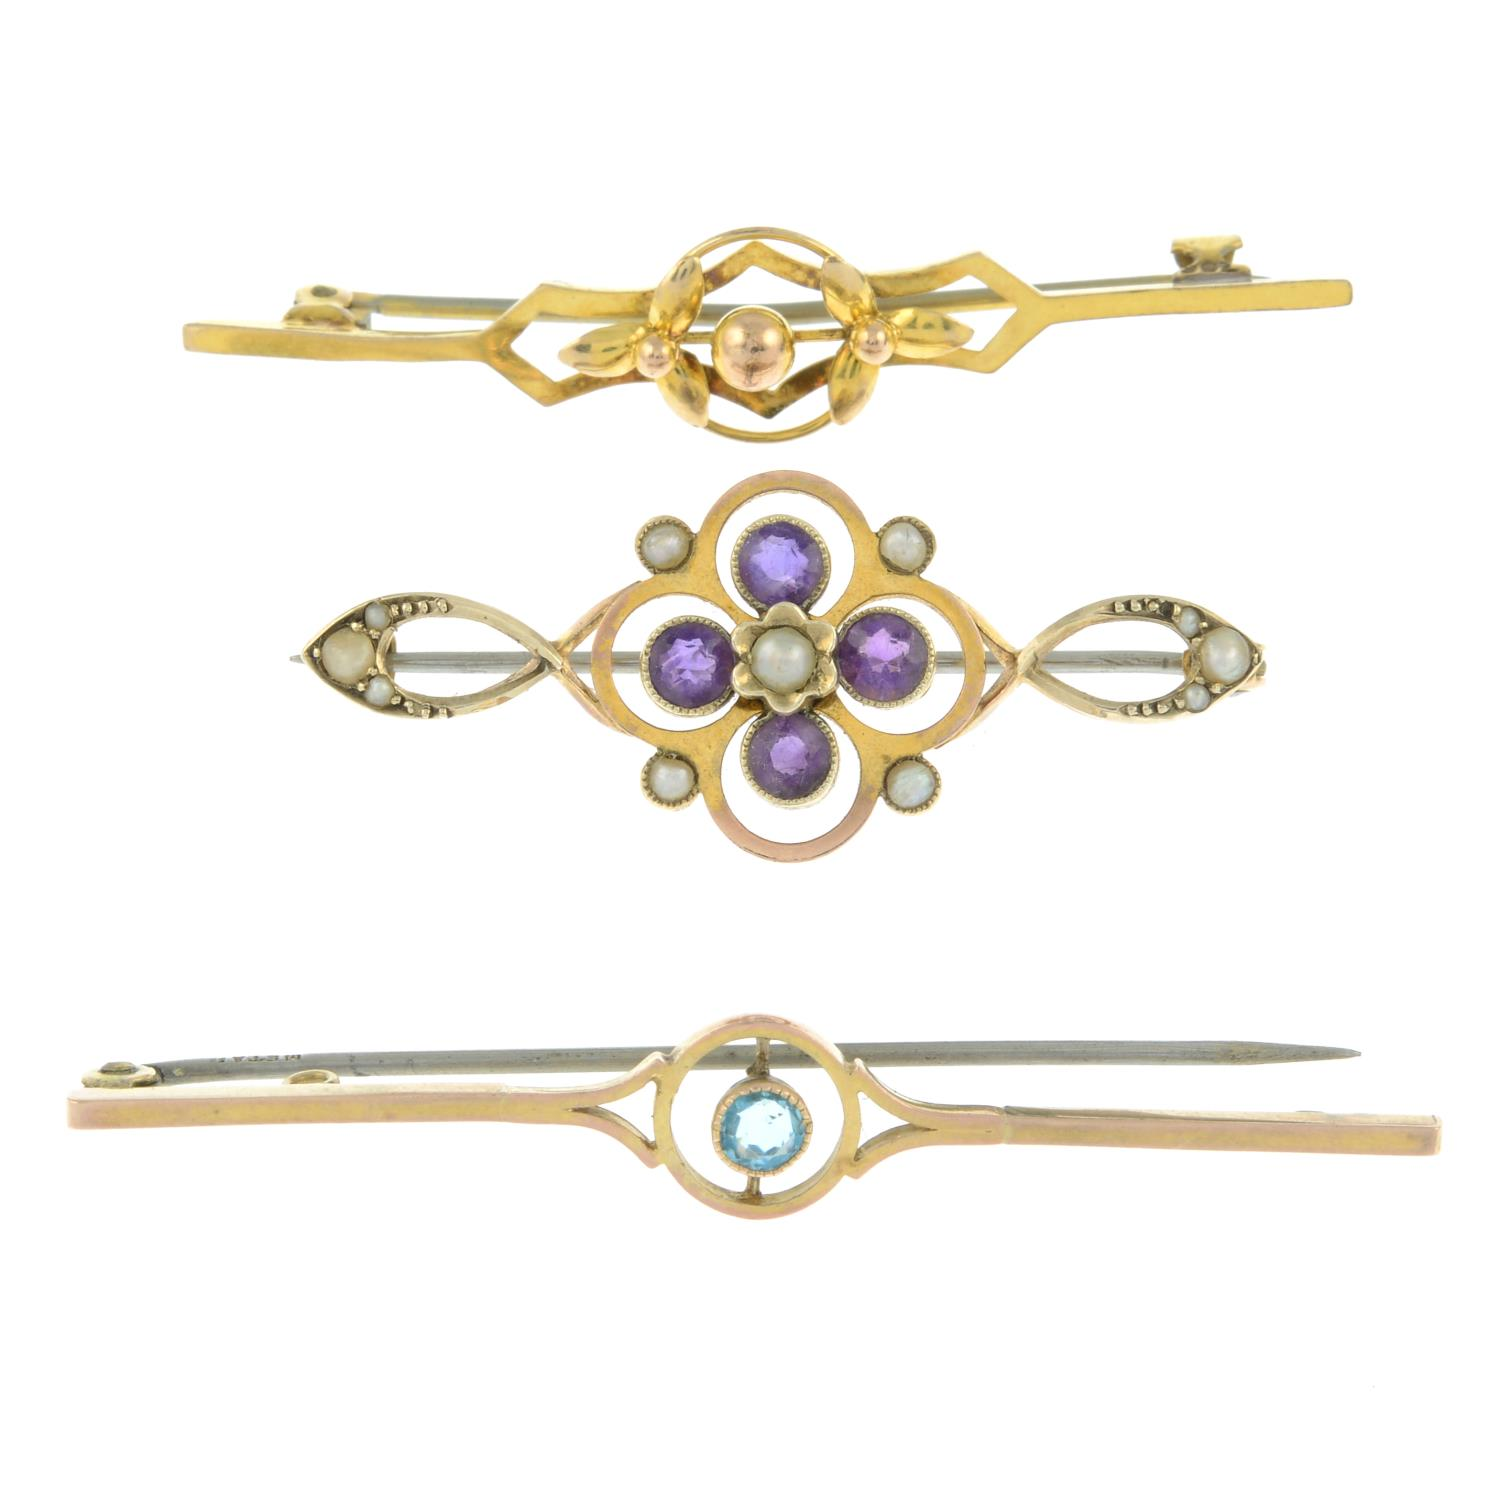 An amethyst and seed pearl brooch,